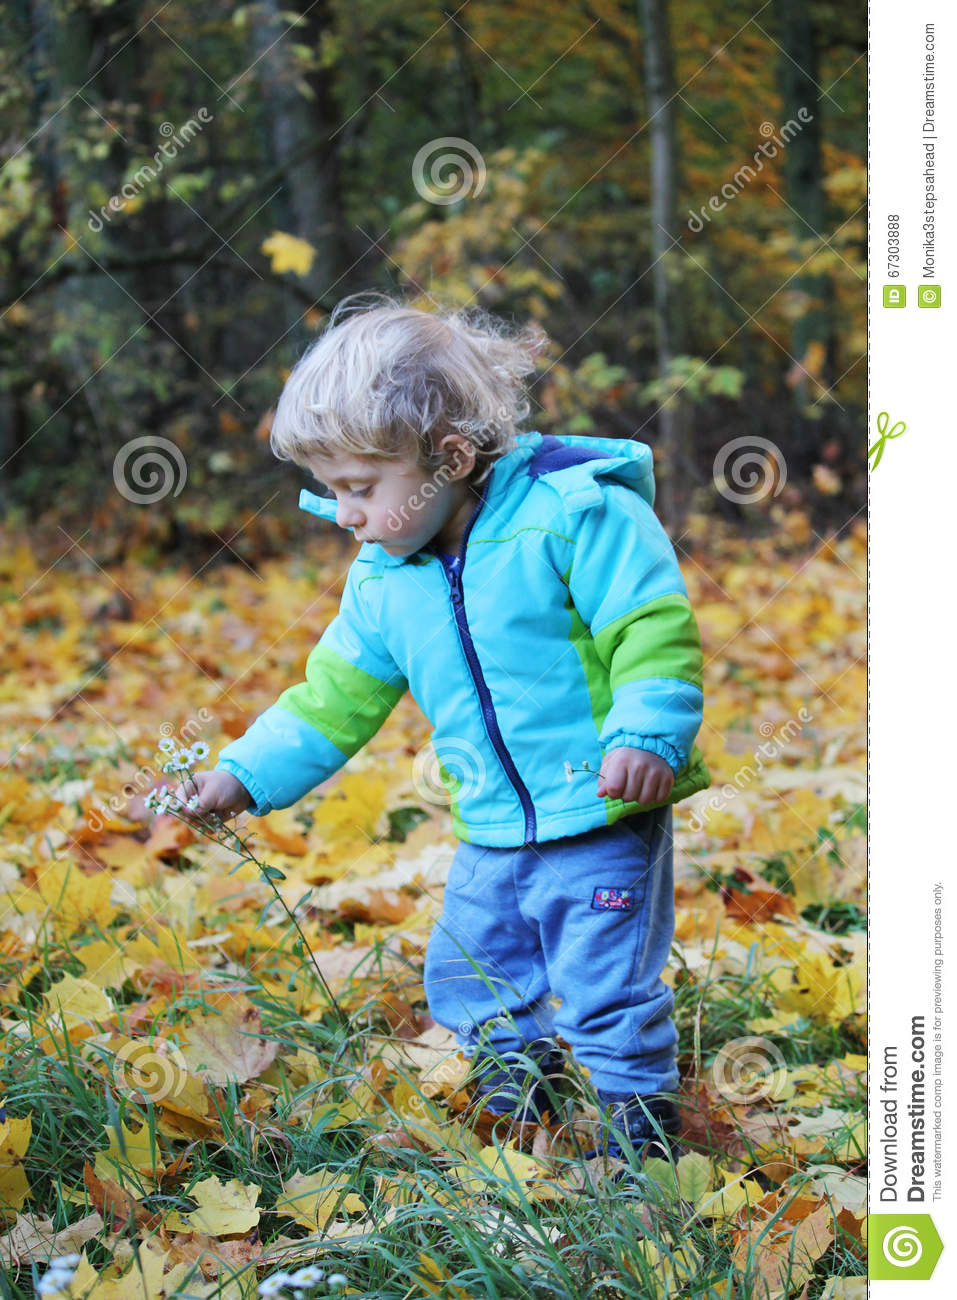 Two years old boy plucking flowers in an autumn forest